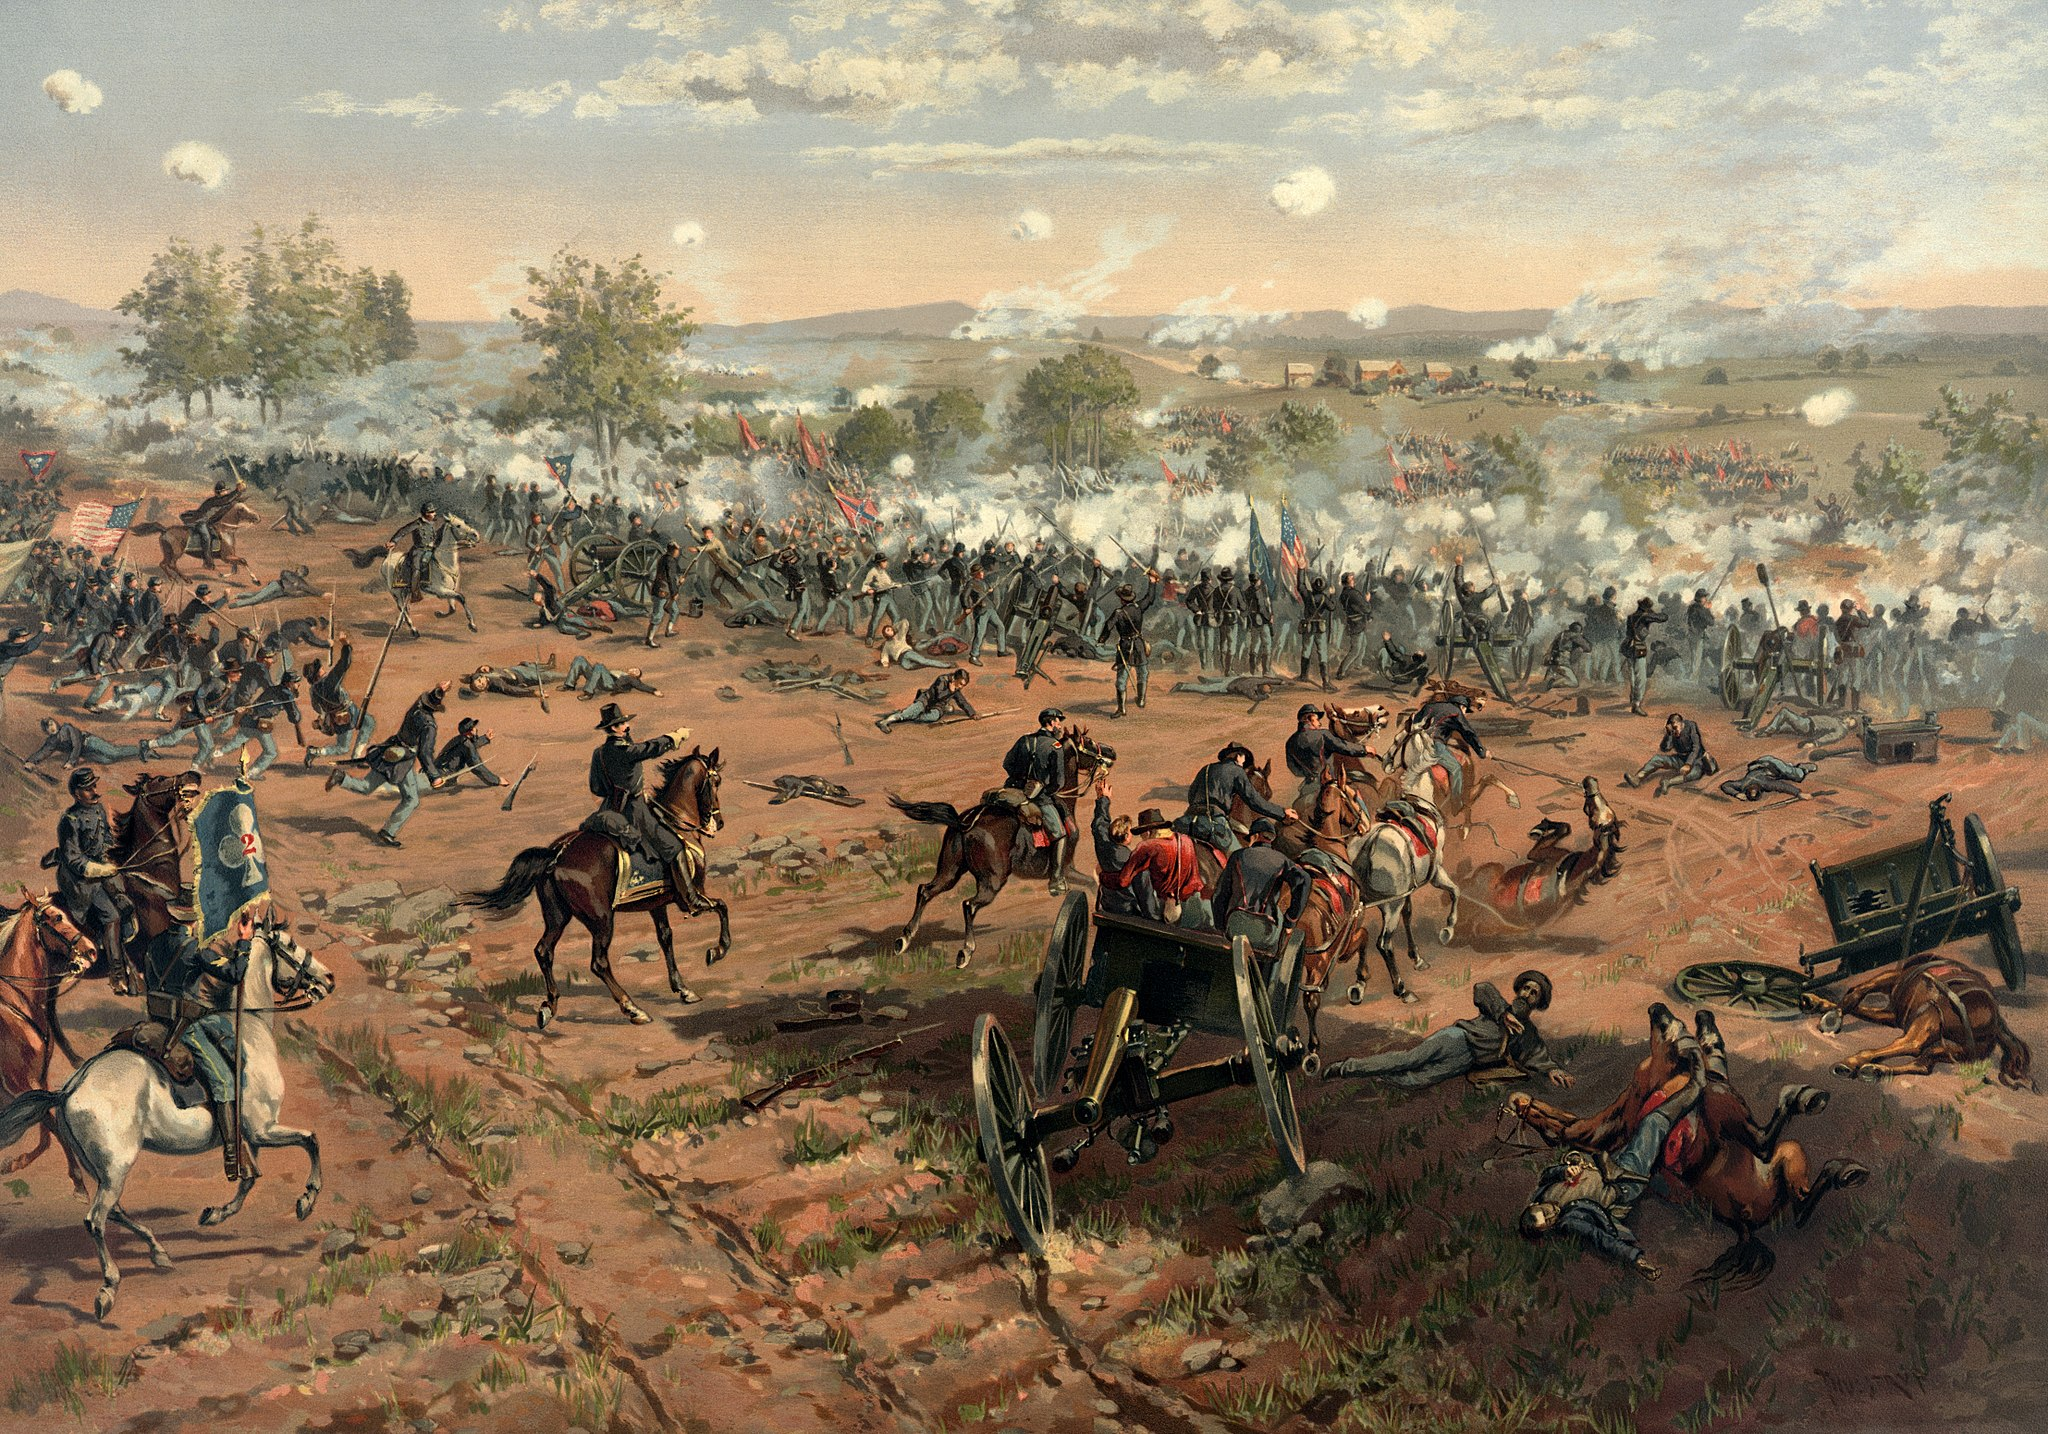 2048px-Thure_de_Thulstrup_-_L._Prang_and_Co._-_Battle_of_Gettysburg_-_Restoration_by_Adam_Cuerden_(cropped).jpg